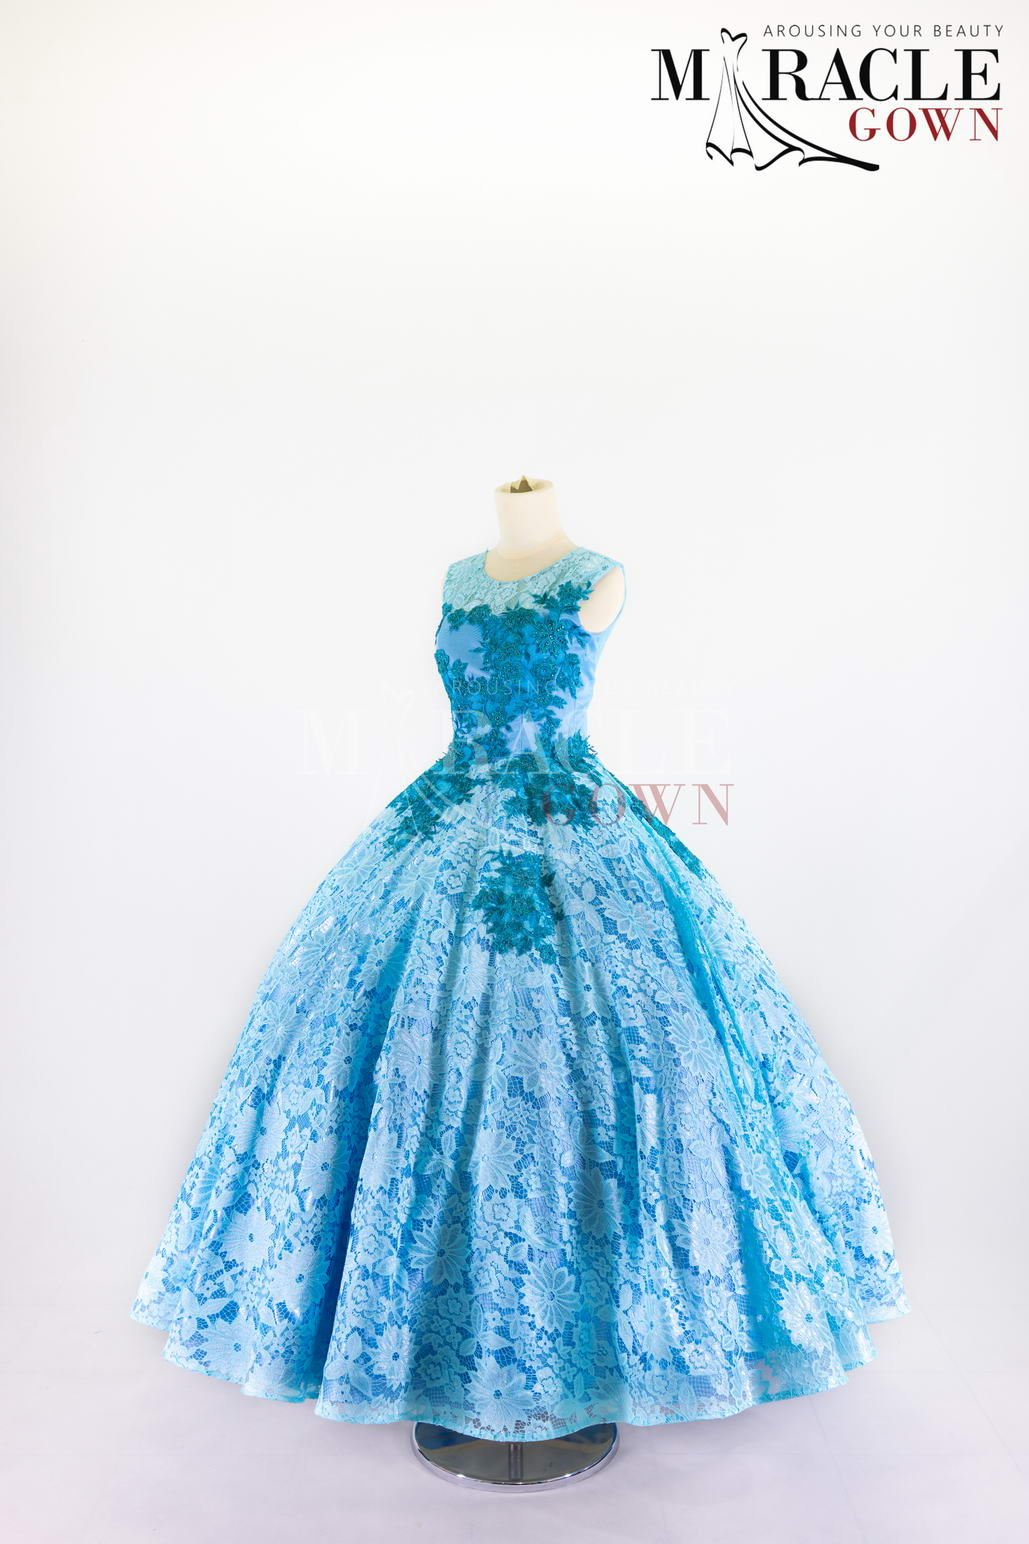 Sewa Gaun Surabaya - Miracle Gown - Topaz blue brocade laced in full cloack gown